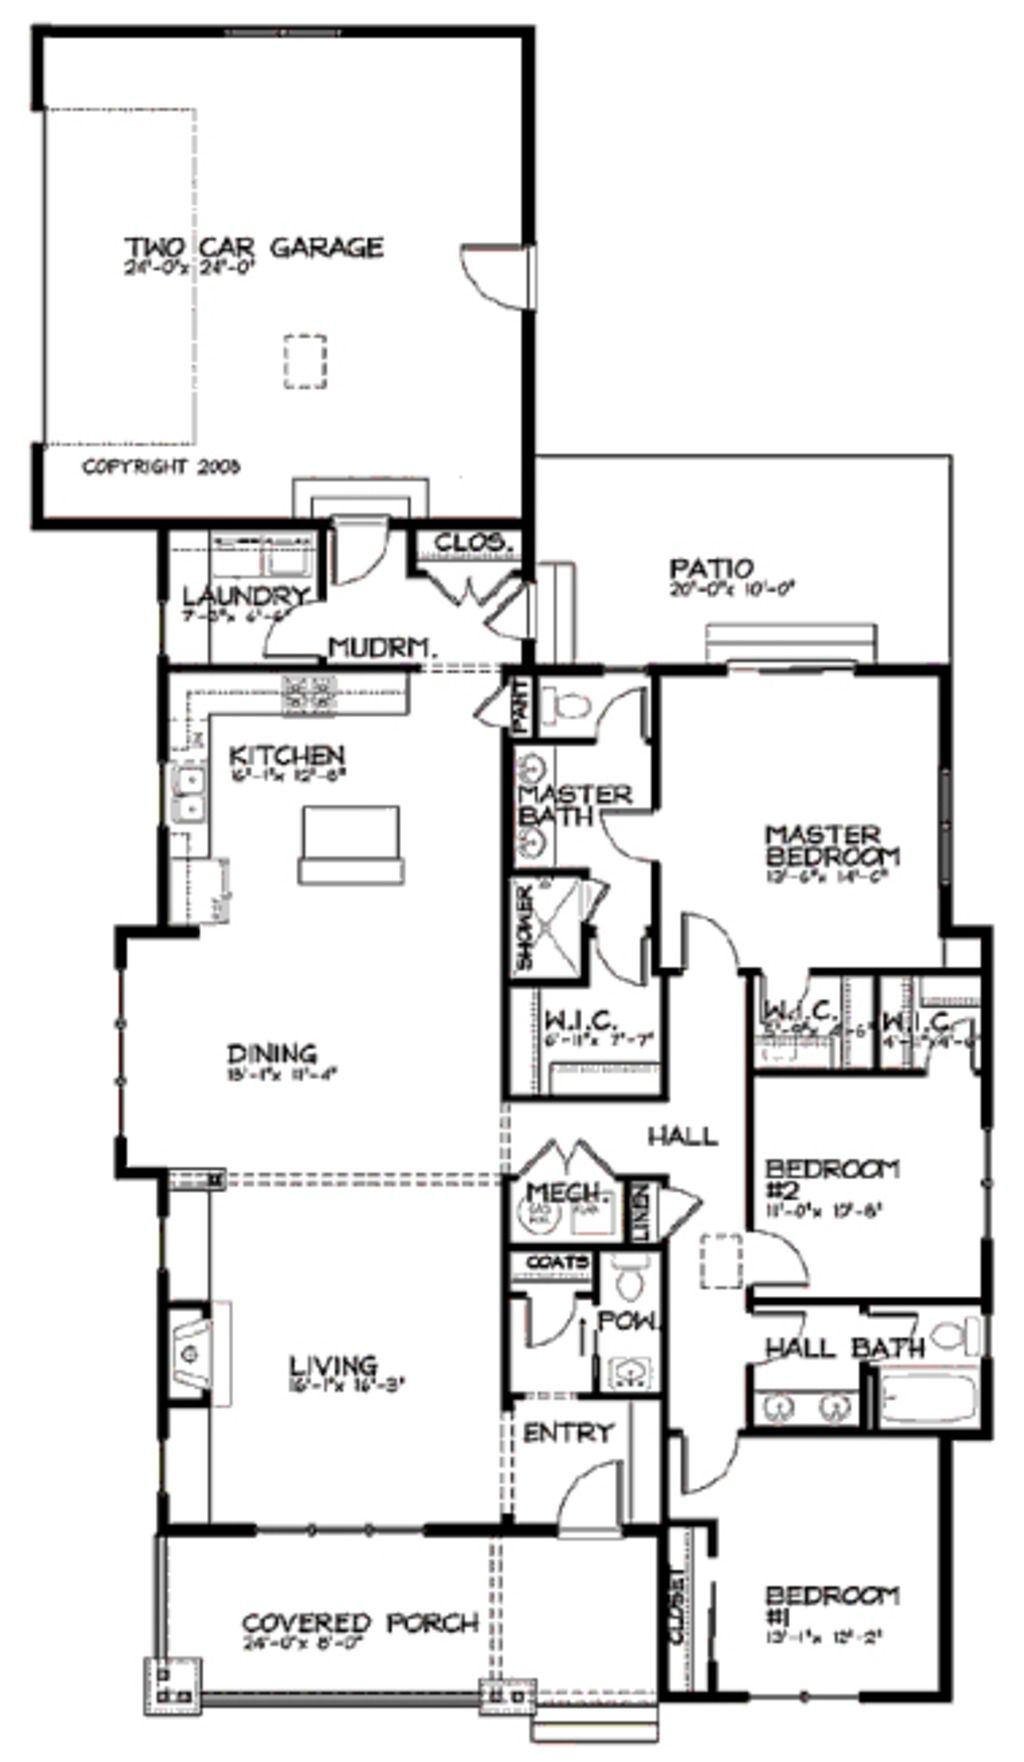 Bungalow Style House Plan 3 Beds 2 5 Baths 1887 Sq Ft Plan 434 6 With Images Narrow Lot House Plans Bungalow Style House Plans Modern Style House Plans